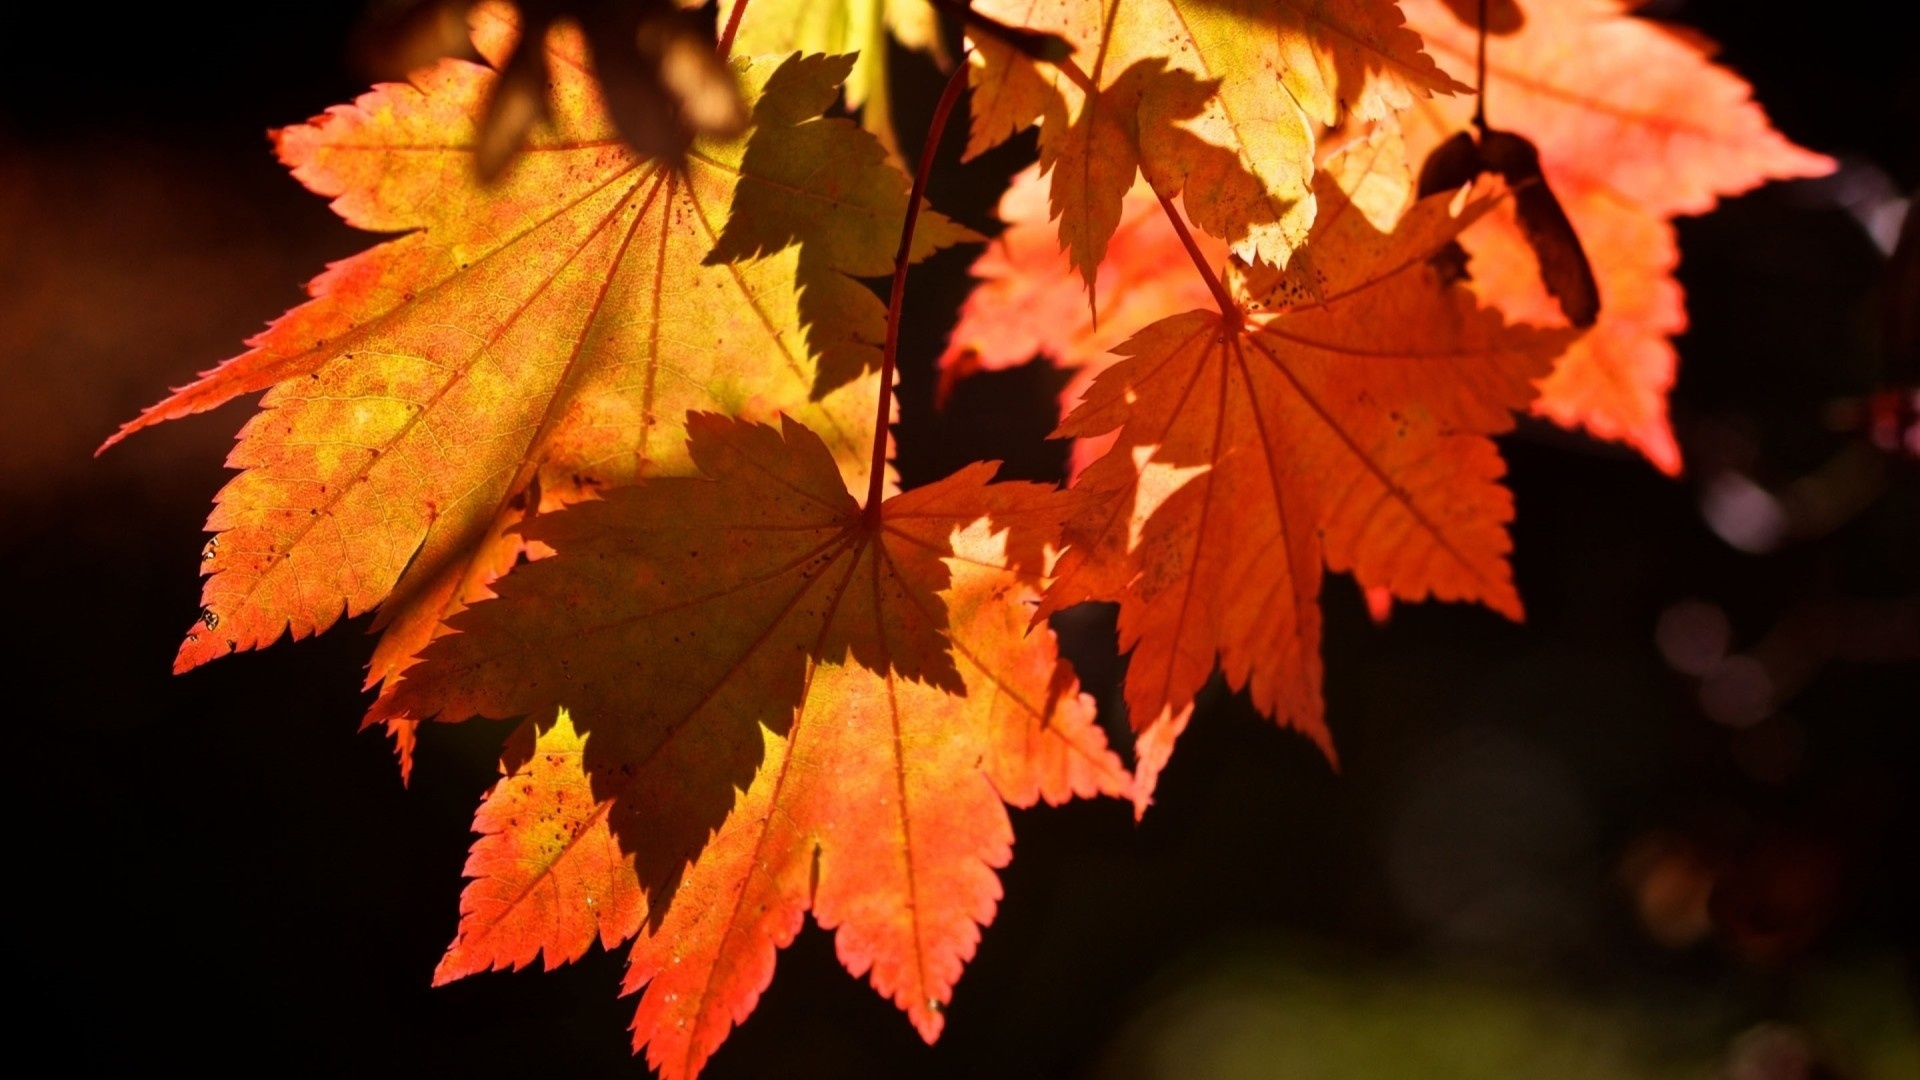 Autumn desktop wallpaper free download